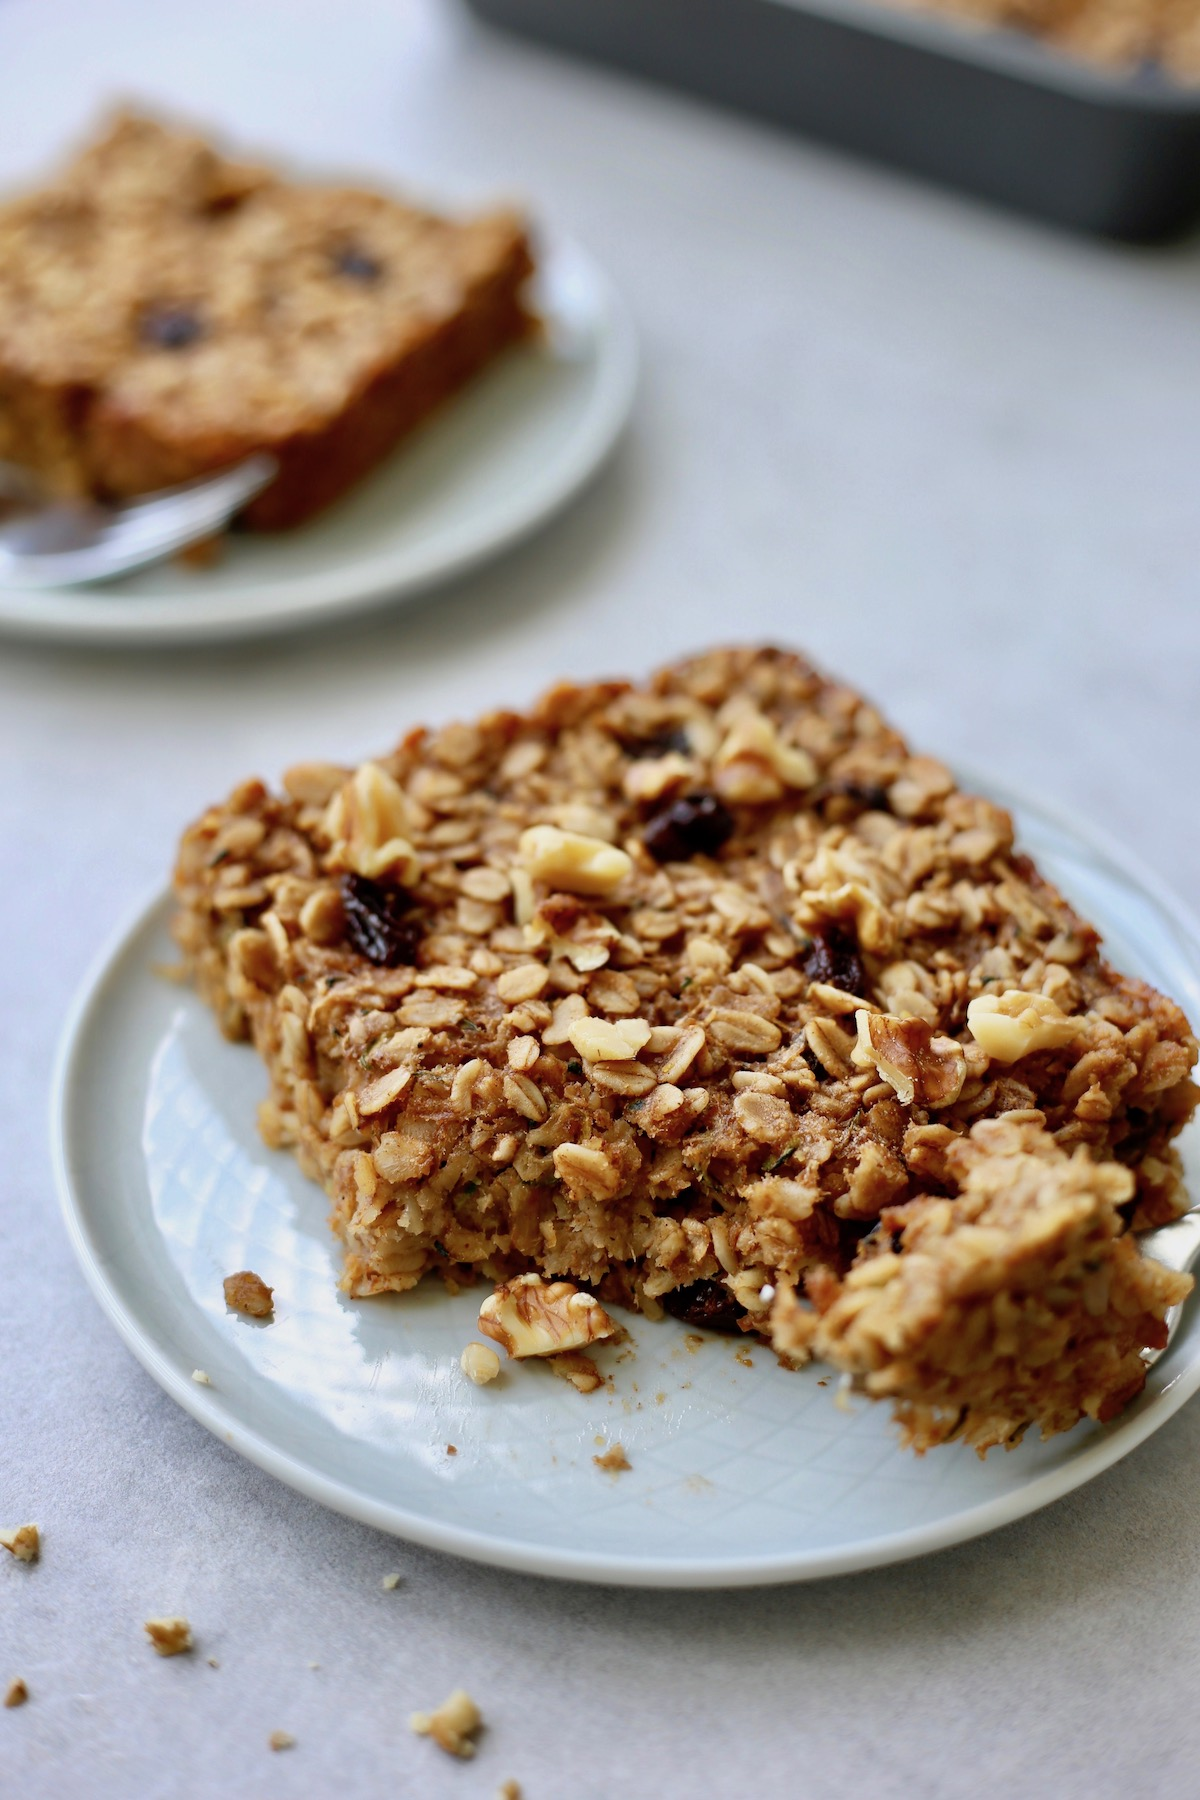 zucchini bread baked oatmeal being eaten off a plate